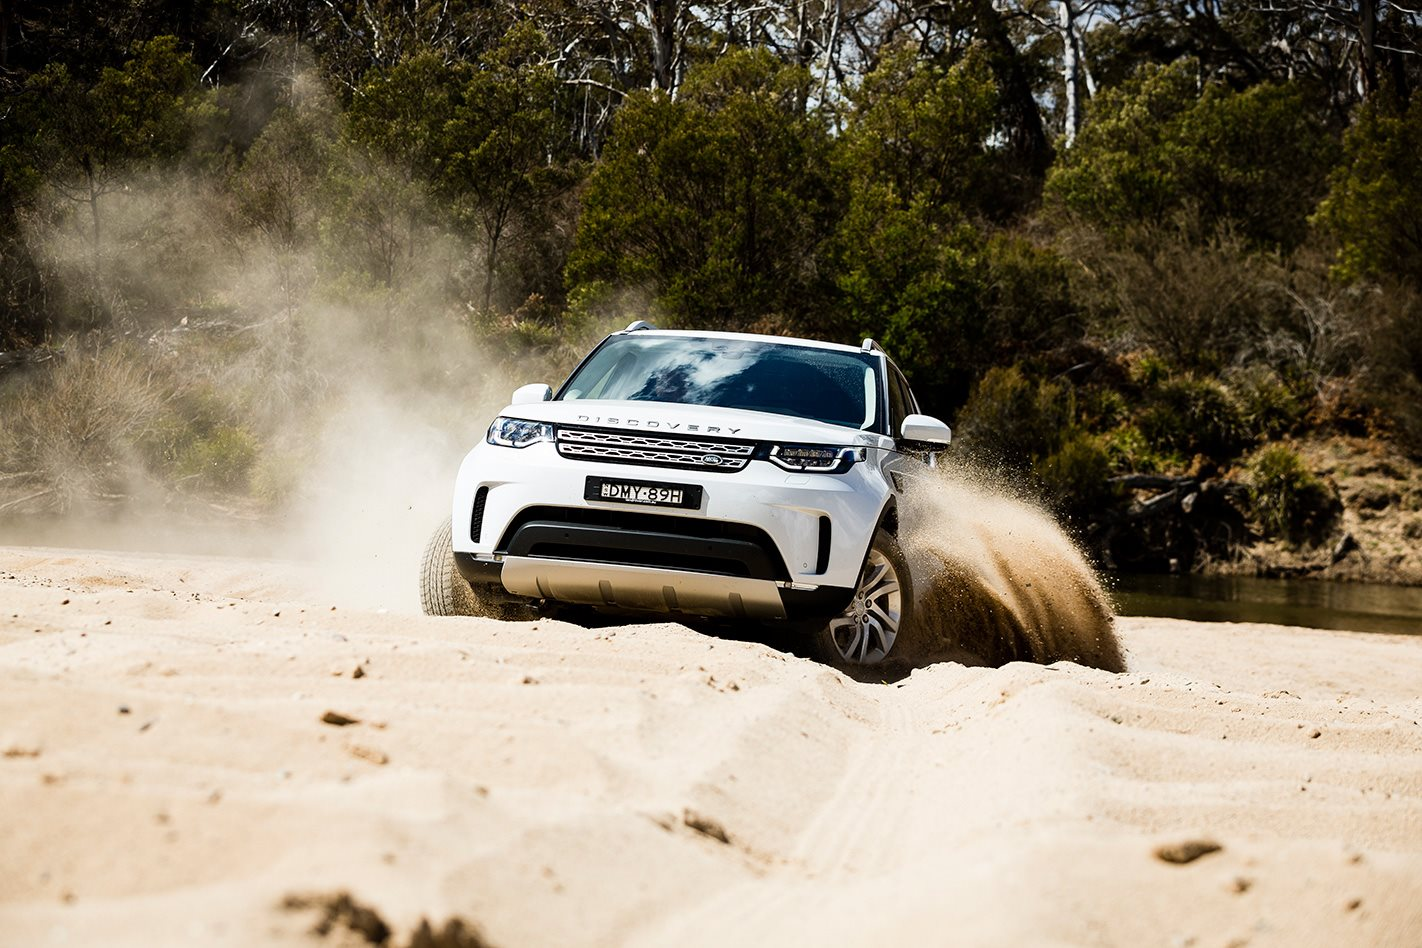 2017 Land Rover Discovery offroading.jpg